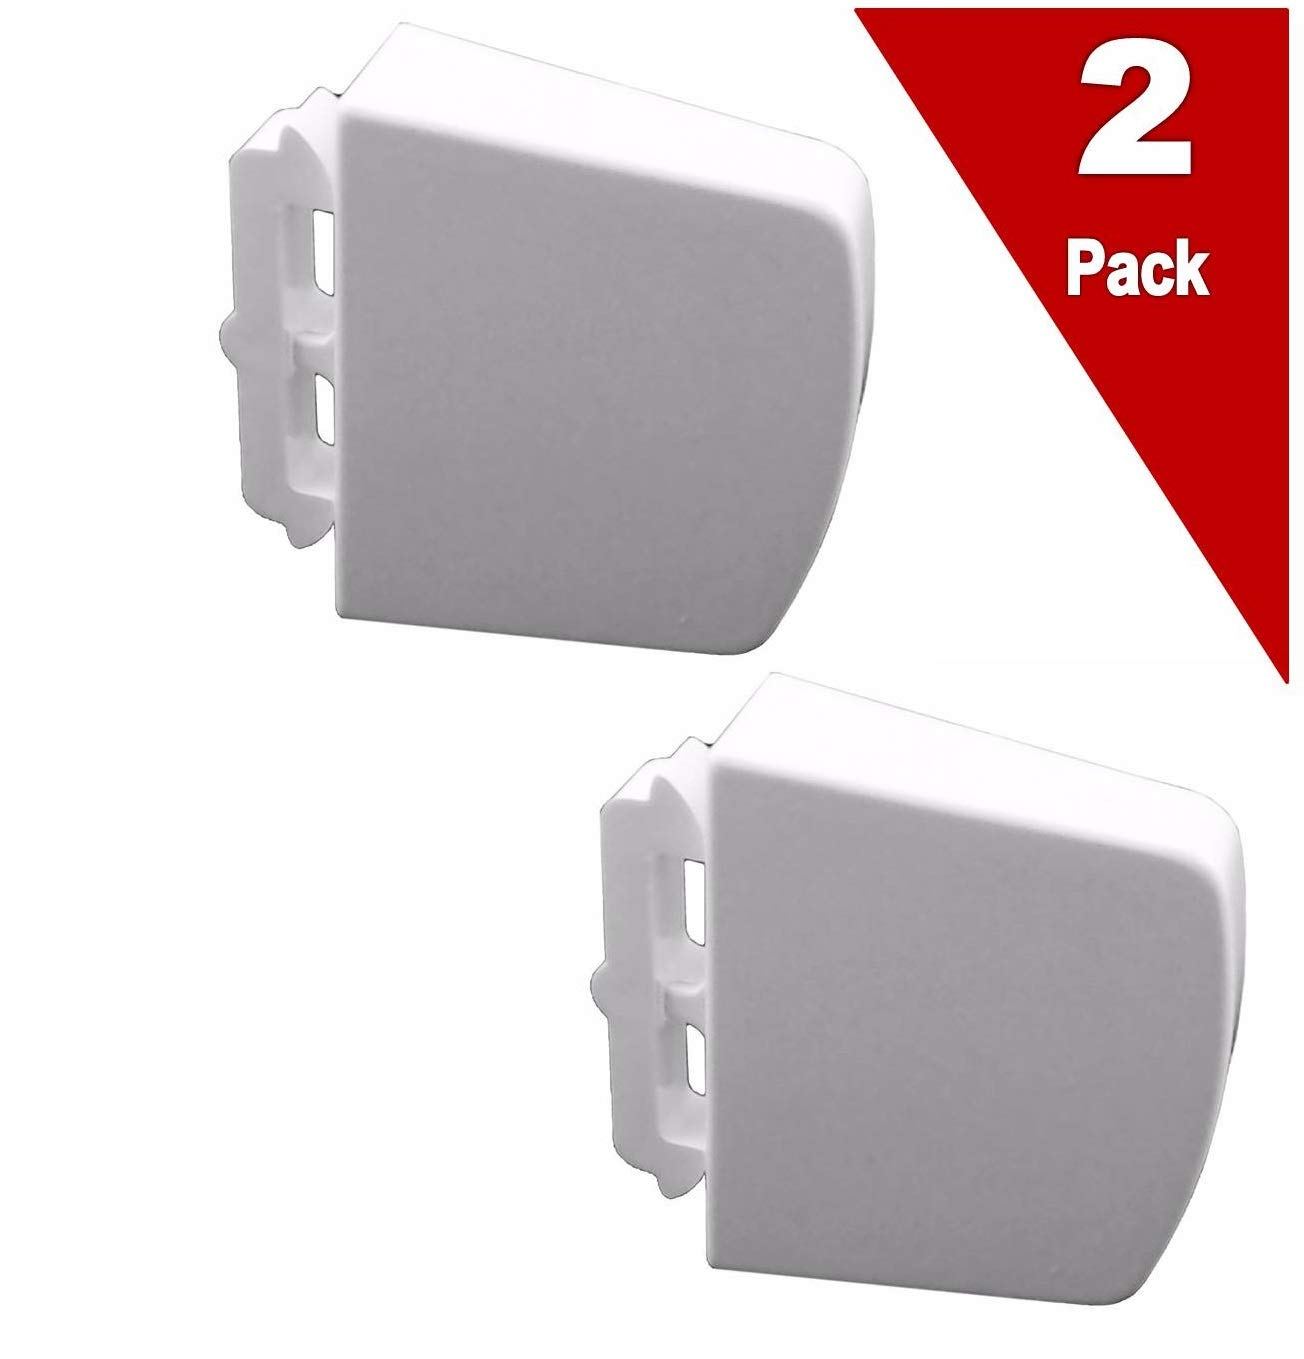 (2 Pack) EXPWR2X7232 Refrigerator Shelf Retainer Bar Endcap (White) Replaces WR2X7232, WR2X8078, PS298403, AP2059155